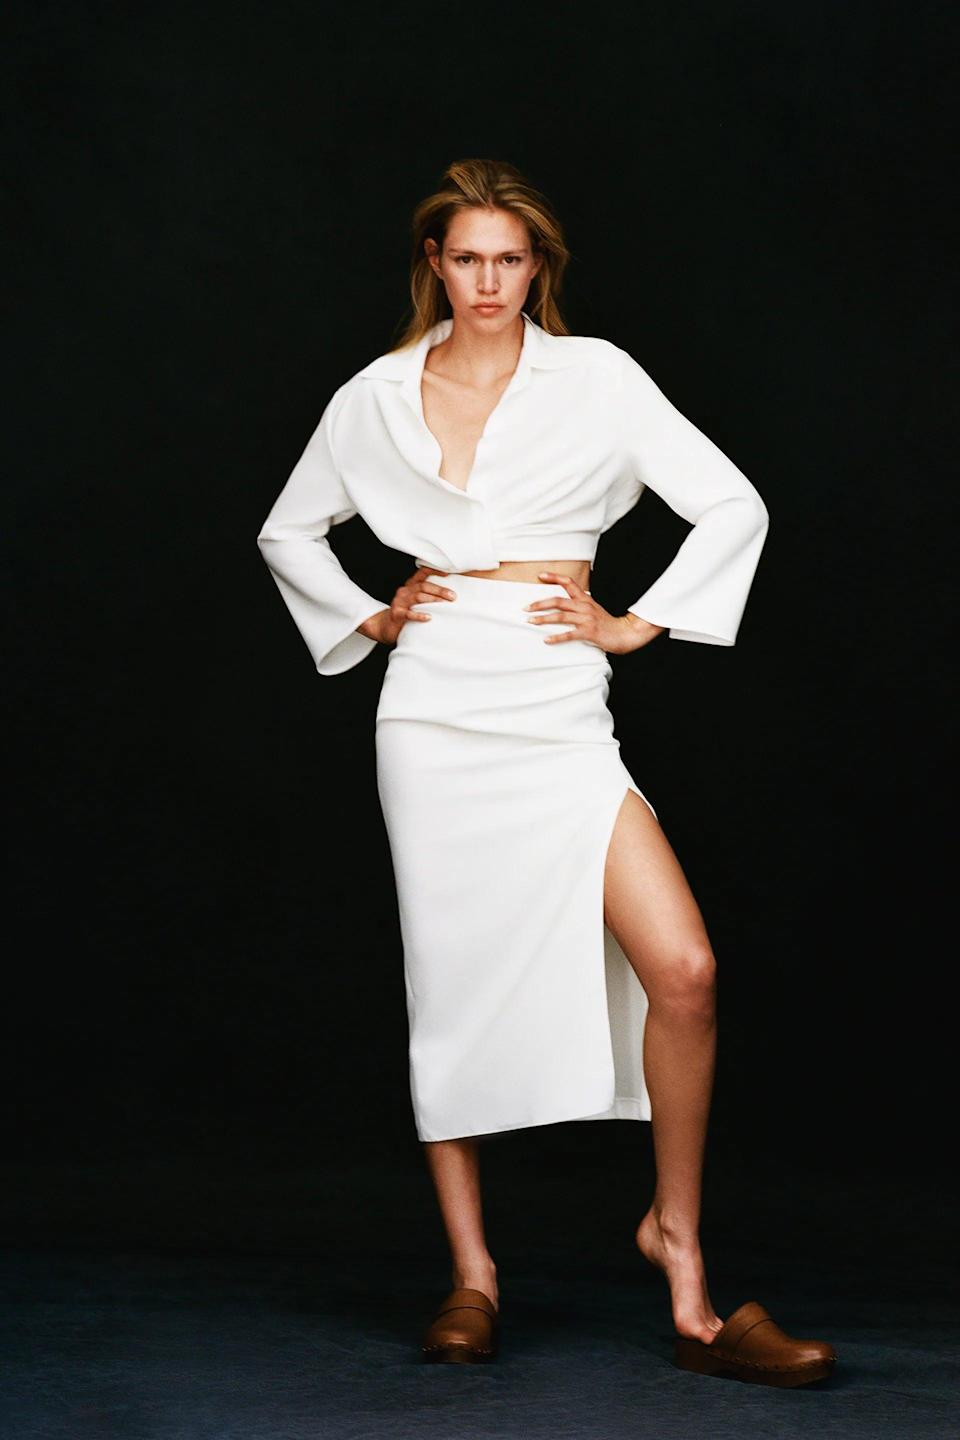 <p>We adore the <span>Zara Draped Pencil Skirt</span> ($50) and <span>Pleated Crop Top</span> ($50) styled together. Each piece is versatile enough to mix and match with so many other items though.</p>